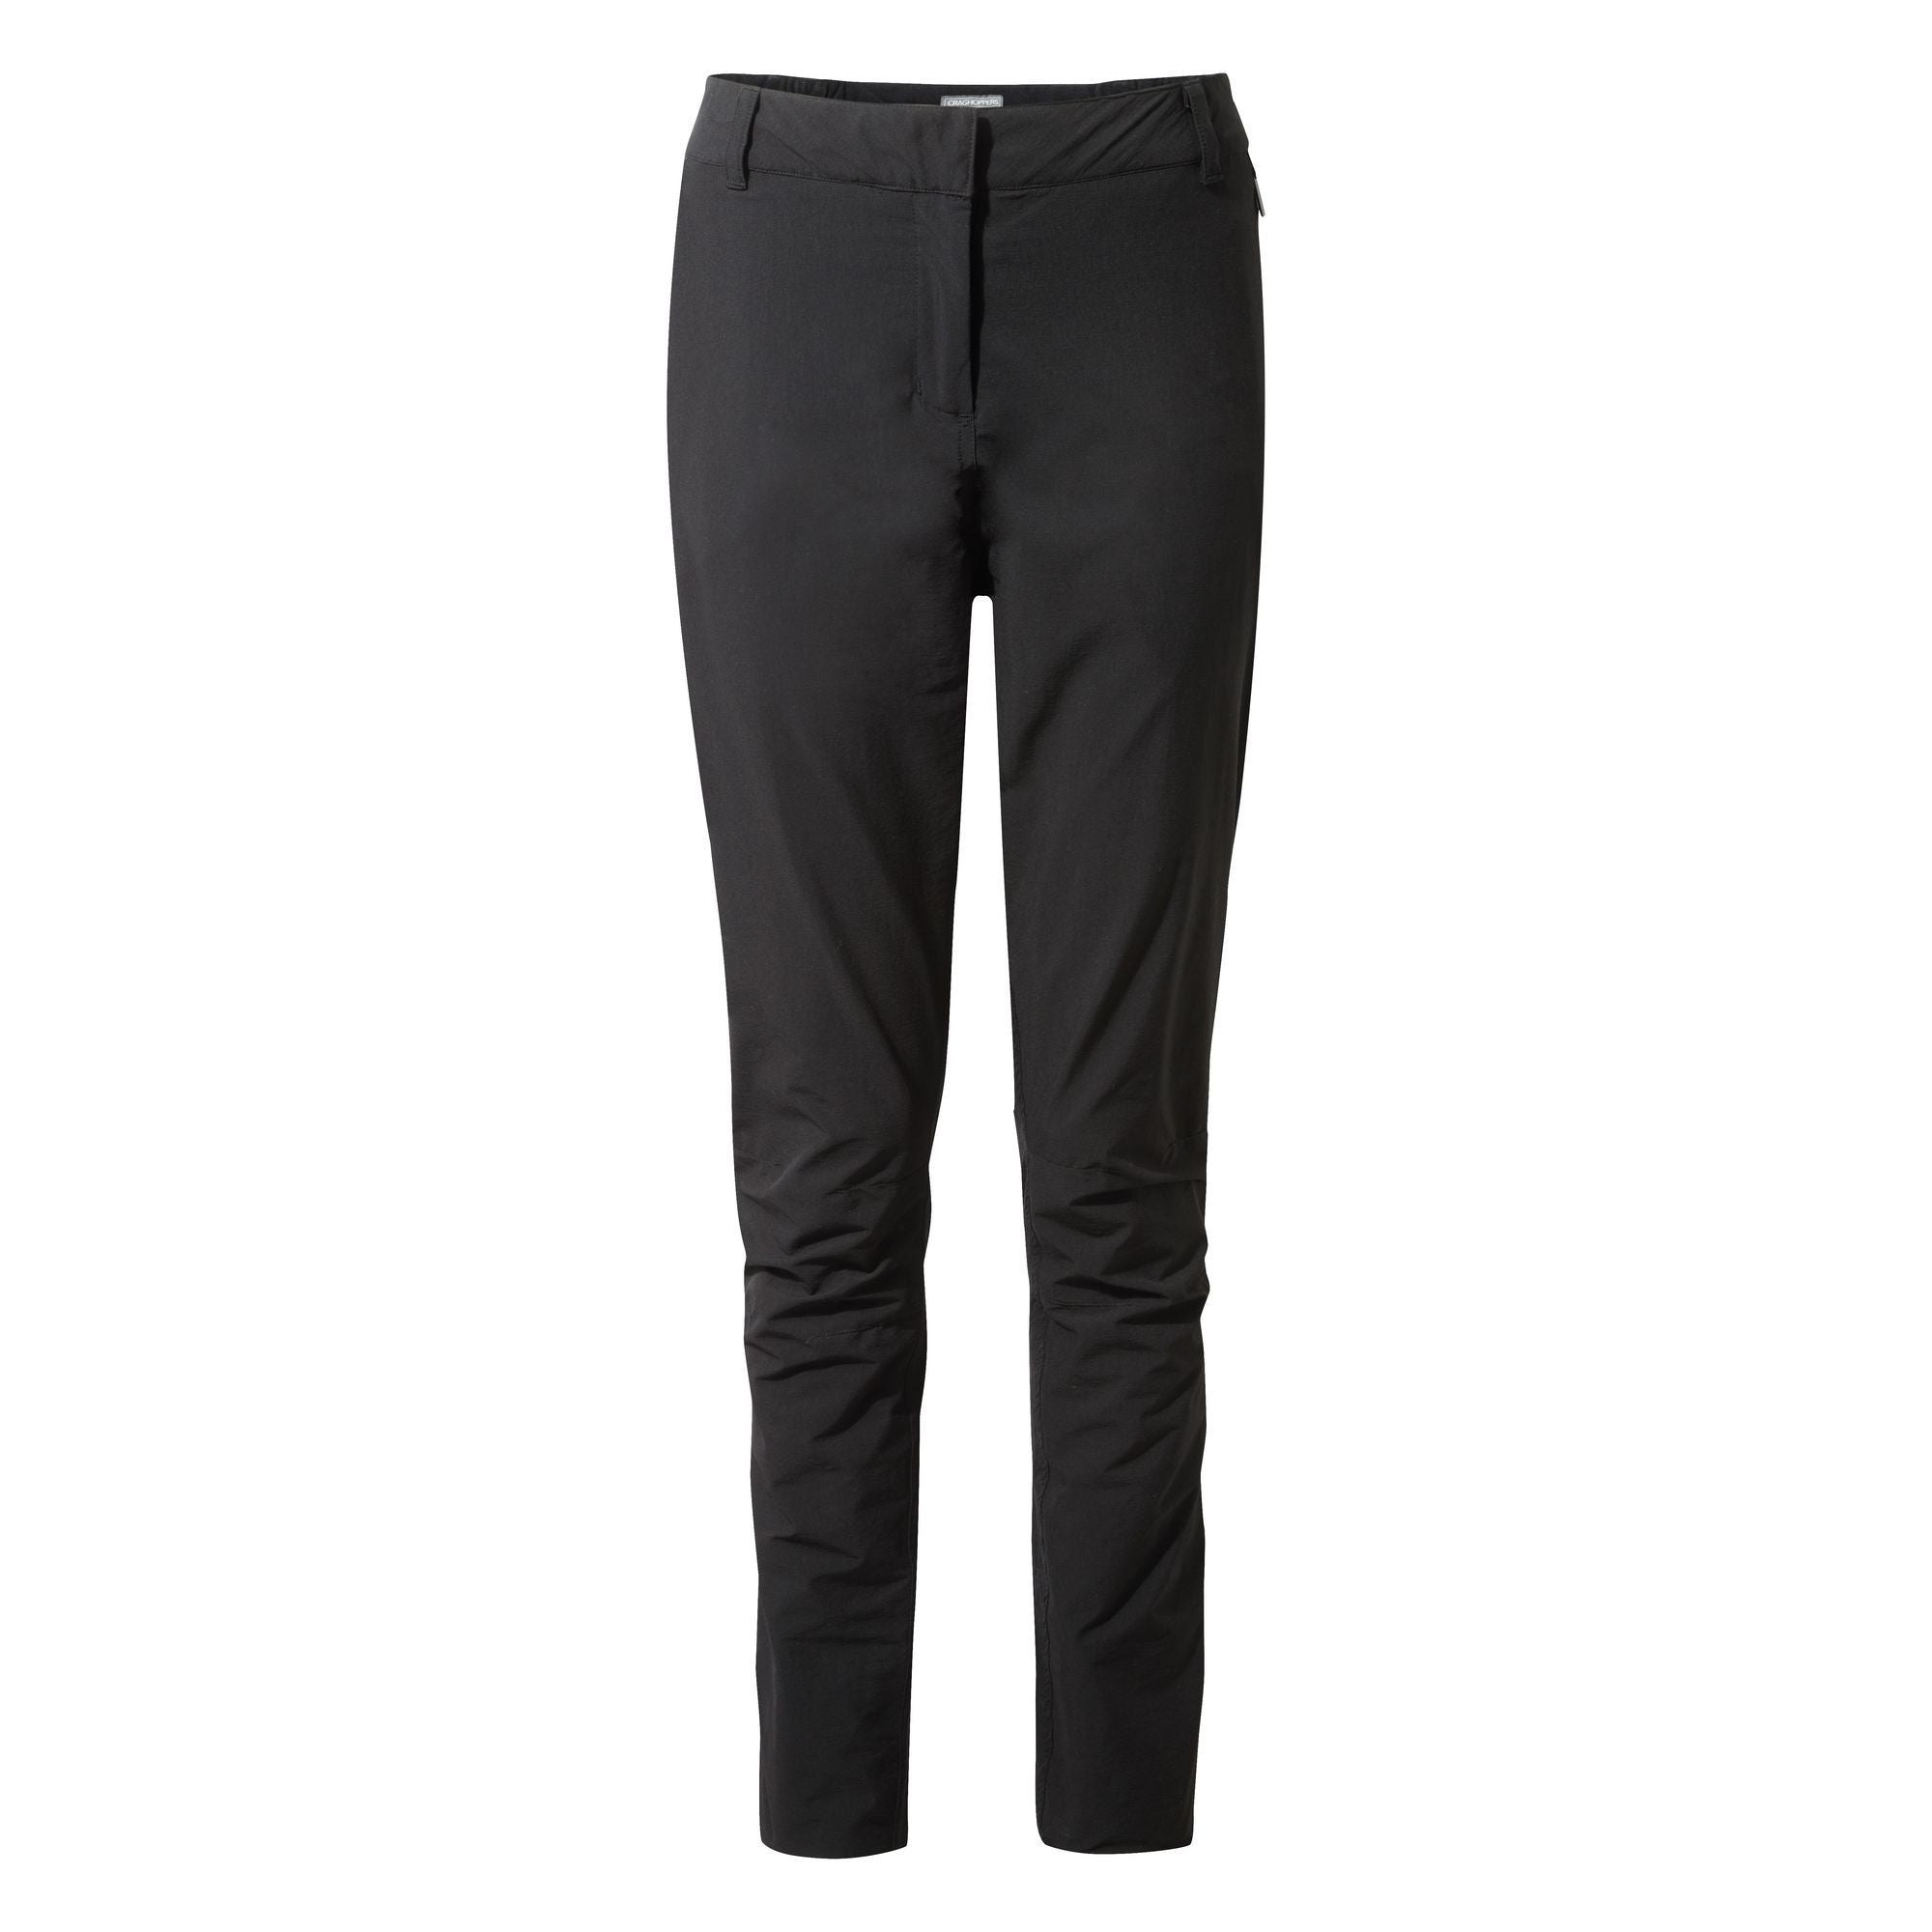 Craghoppers Kiwi Pro Waterproof Trousers for Ladies in Black